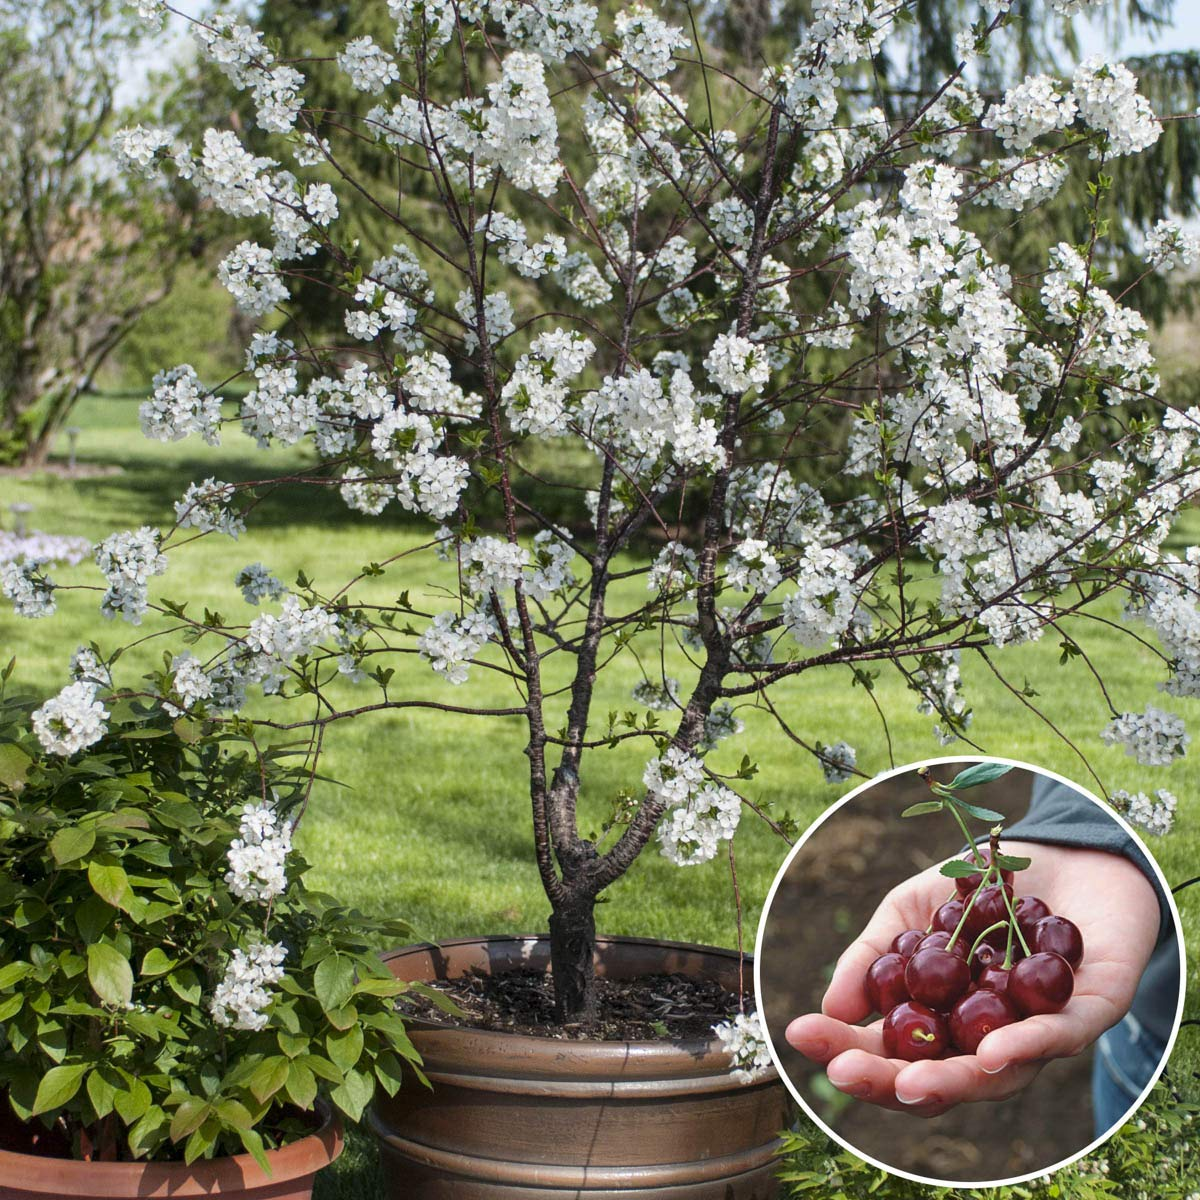 Romeo Cold Hardy Dwarf Bush Cherry Tree - Ships as a Bare Root Plant - Newly Available in The U.S.A.! - Due to regulations Can't Ship to CA, CO, ID, OR, or WA.